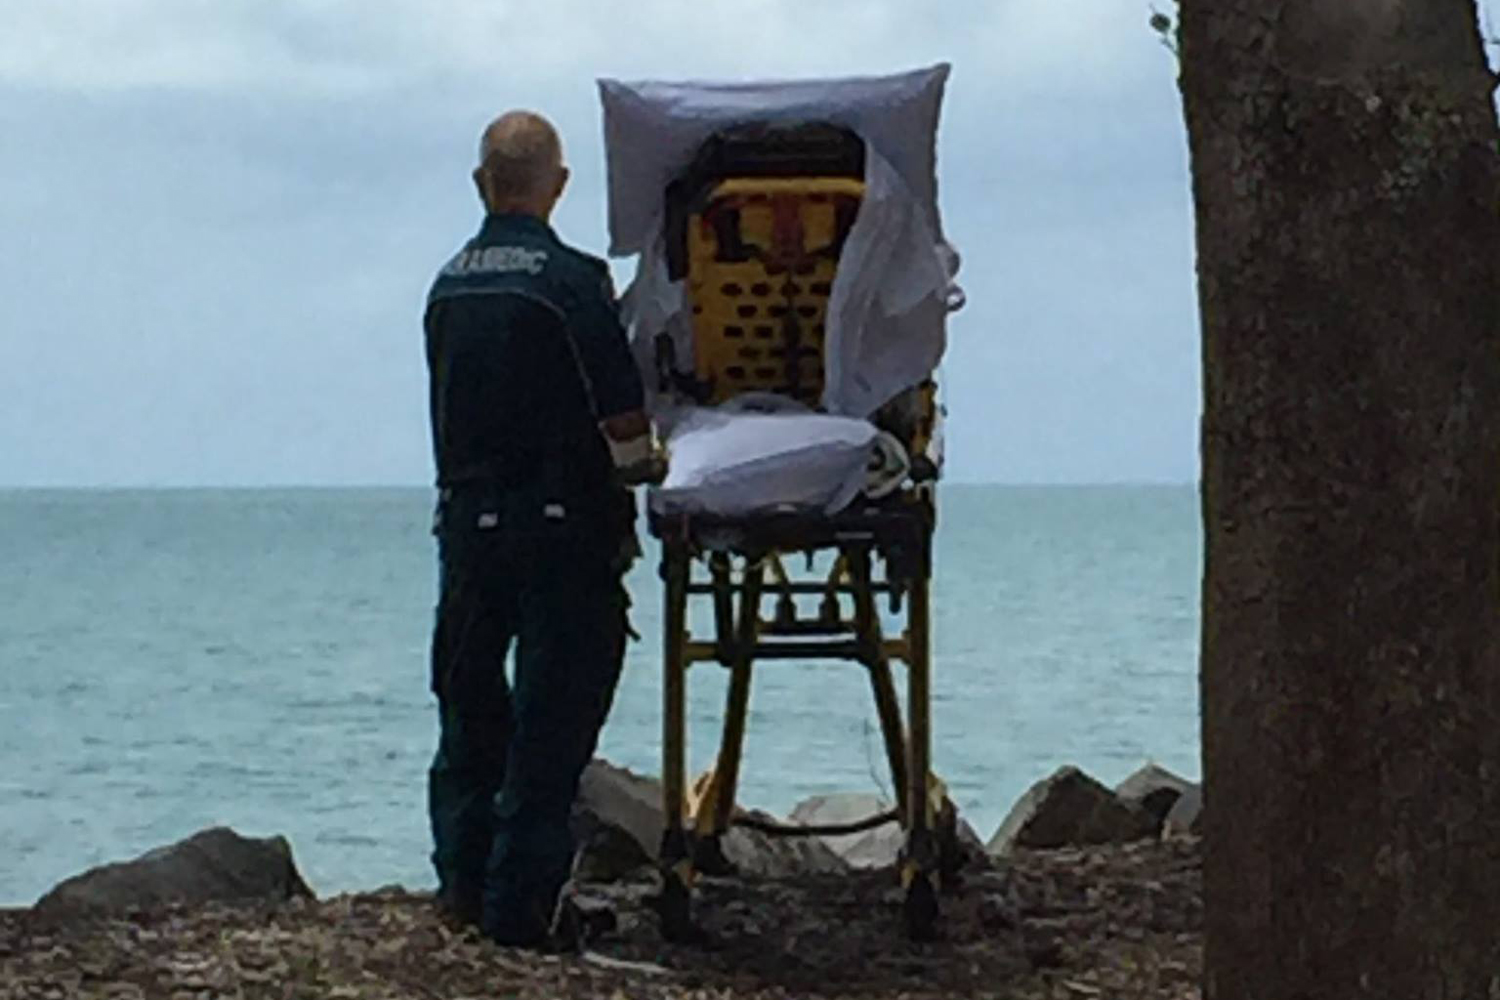 Ambulance crew gives terminally ill patient a side trip to the beach